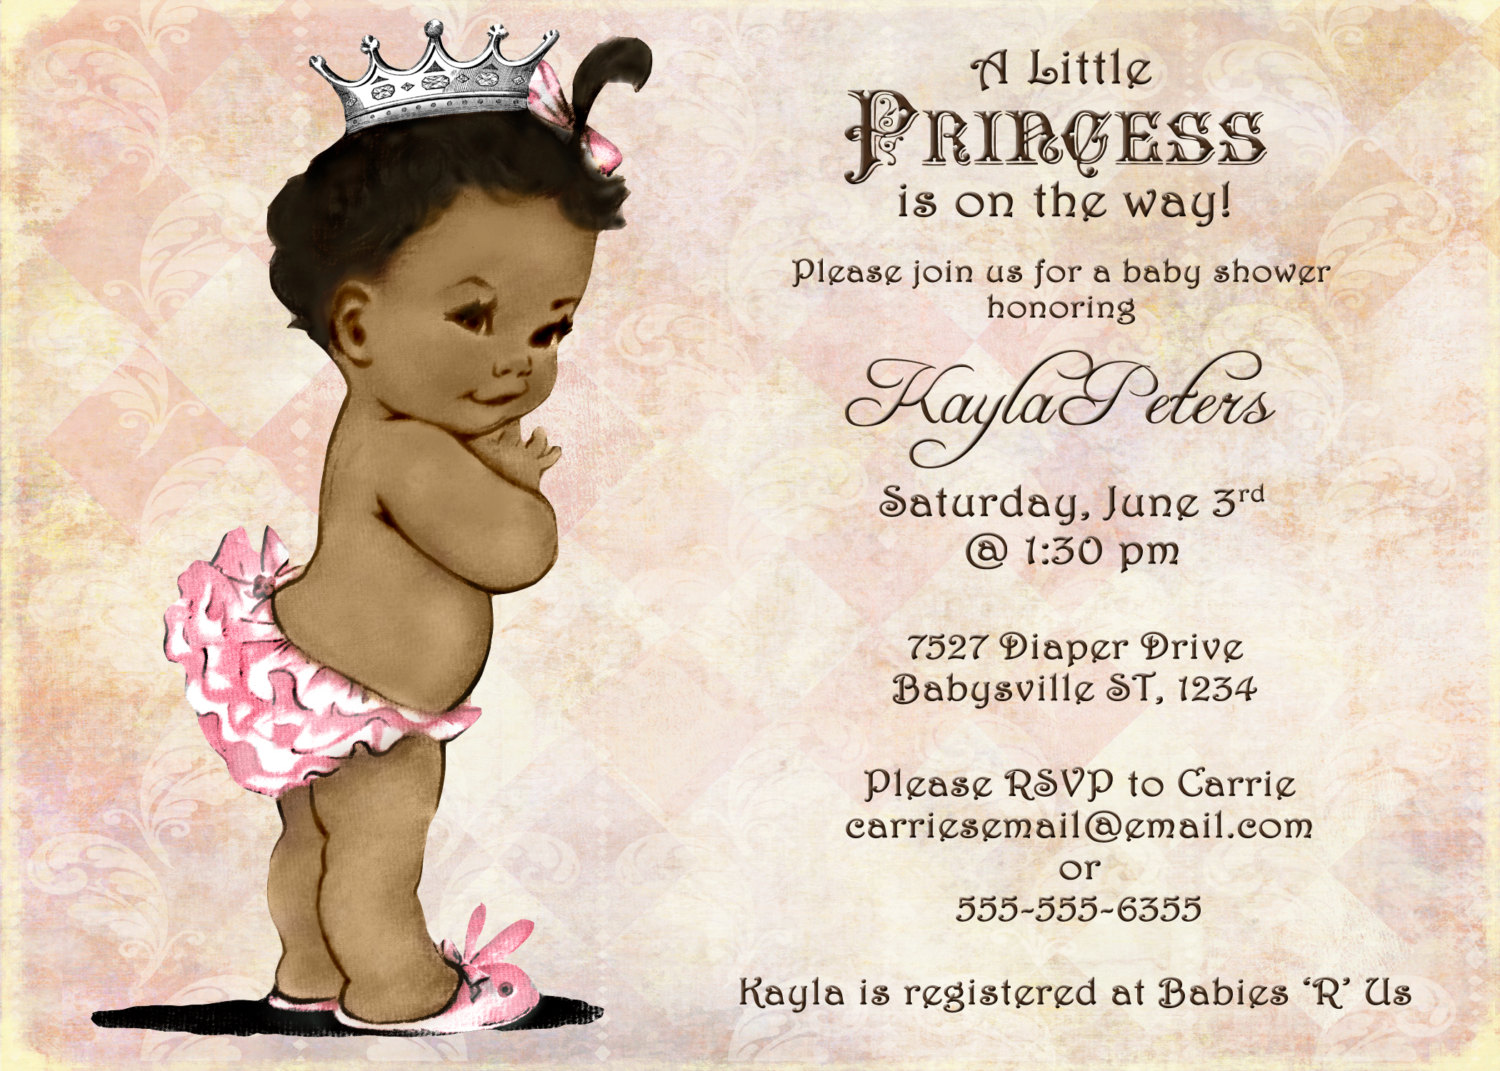 Full Size of Baby Shower:63+ Delightful Cheap Baby Shower Invitations Image Inspirations Black Baby Shower Invitations Sansalvajecom Black Baby Shower Invitations Is Sensational Ideas Which Can Be Applied Into Your Baby Shower Invitation 1